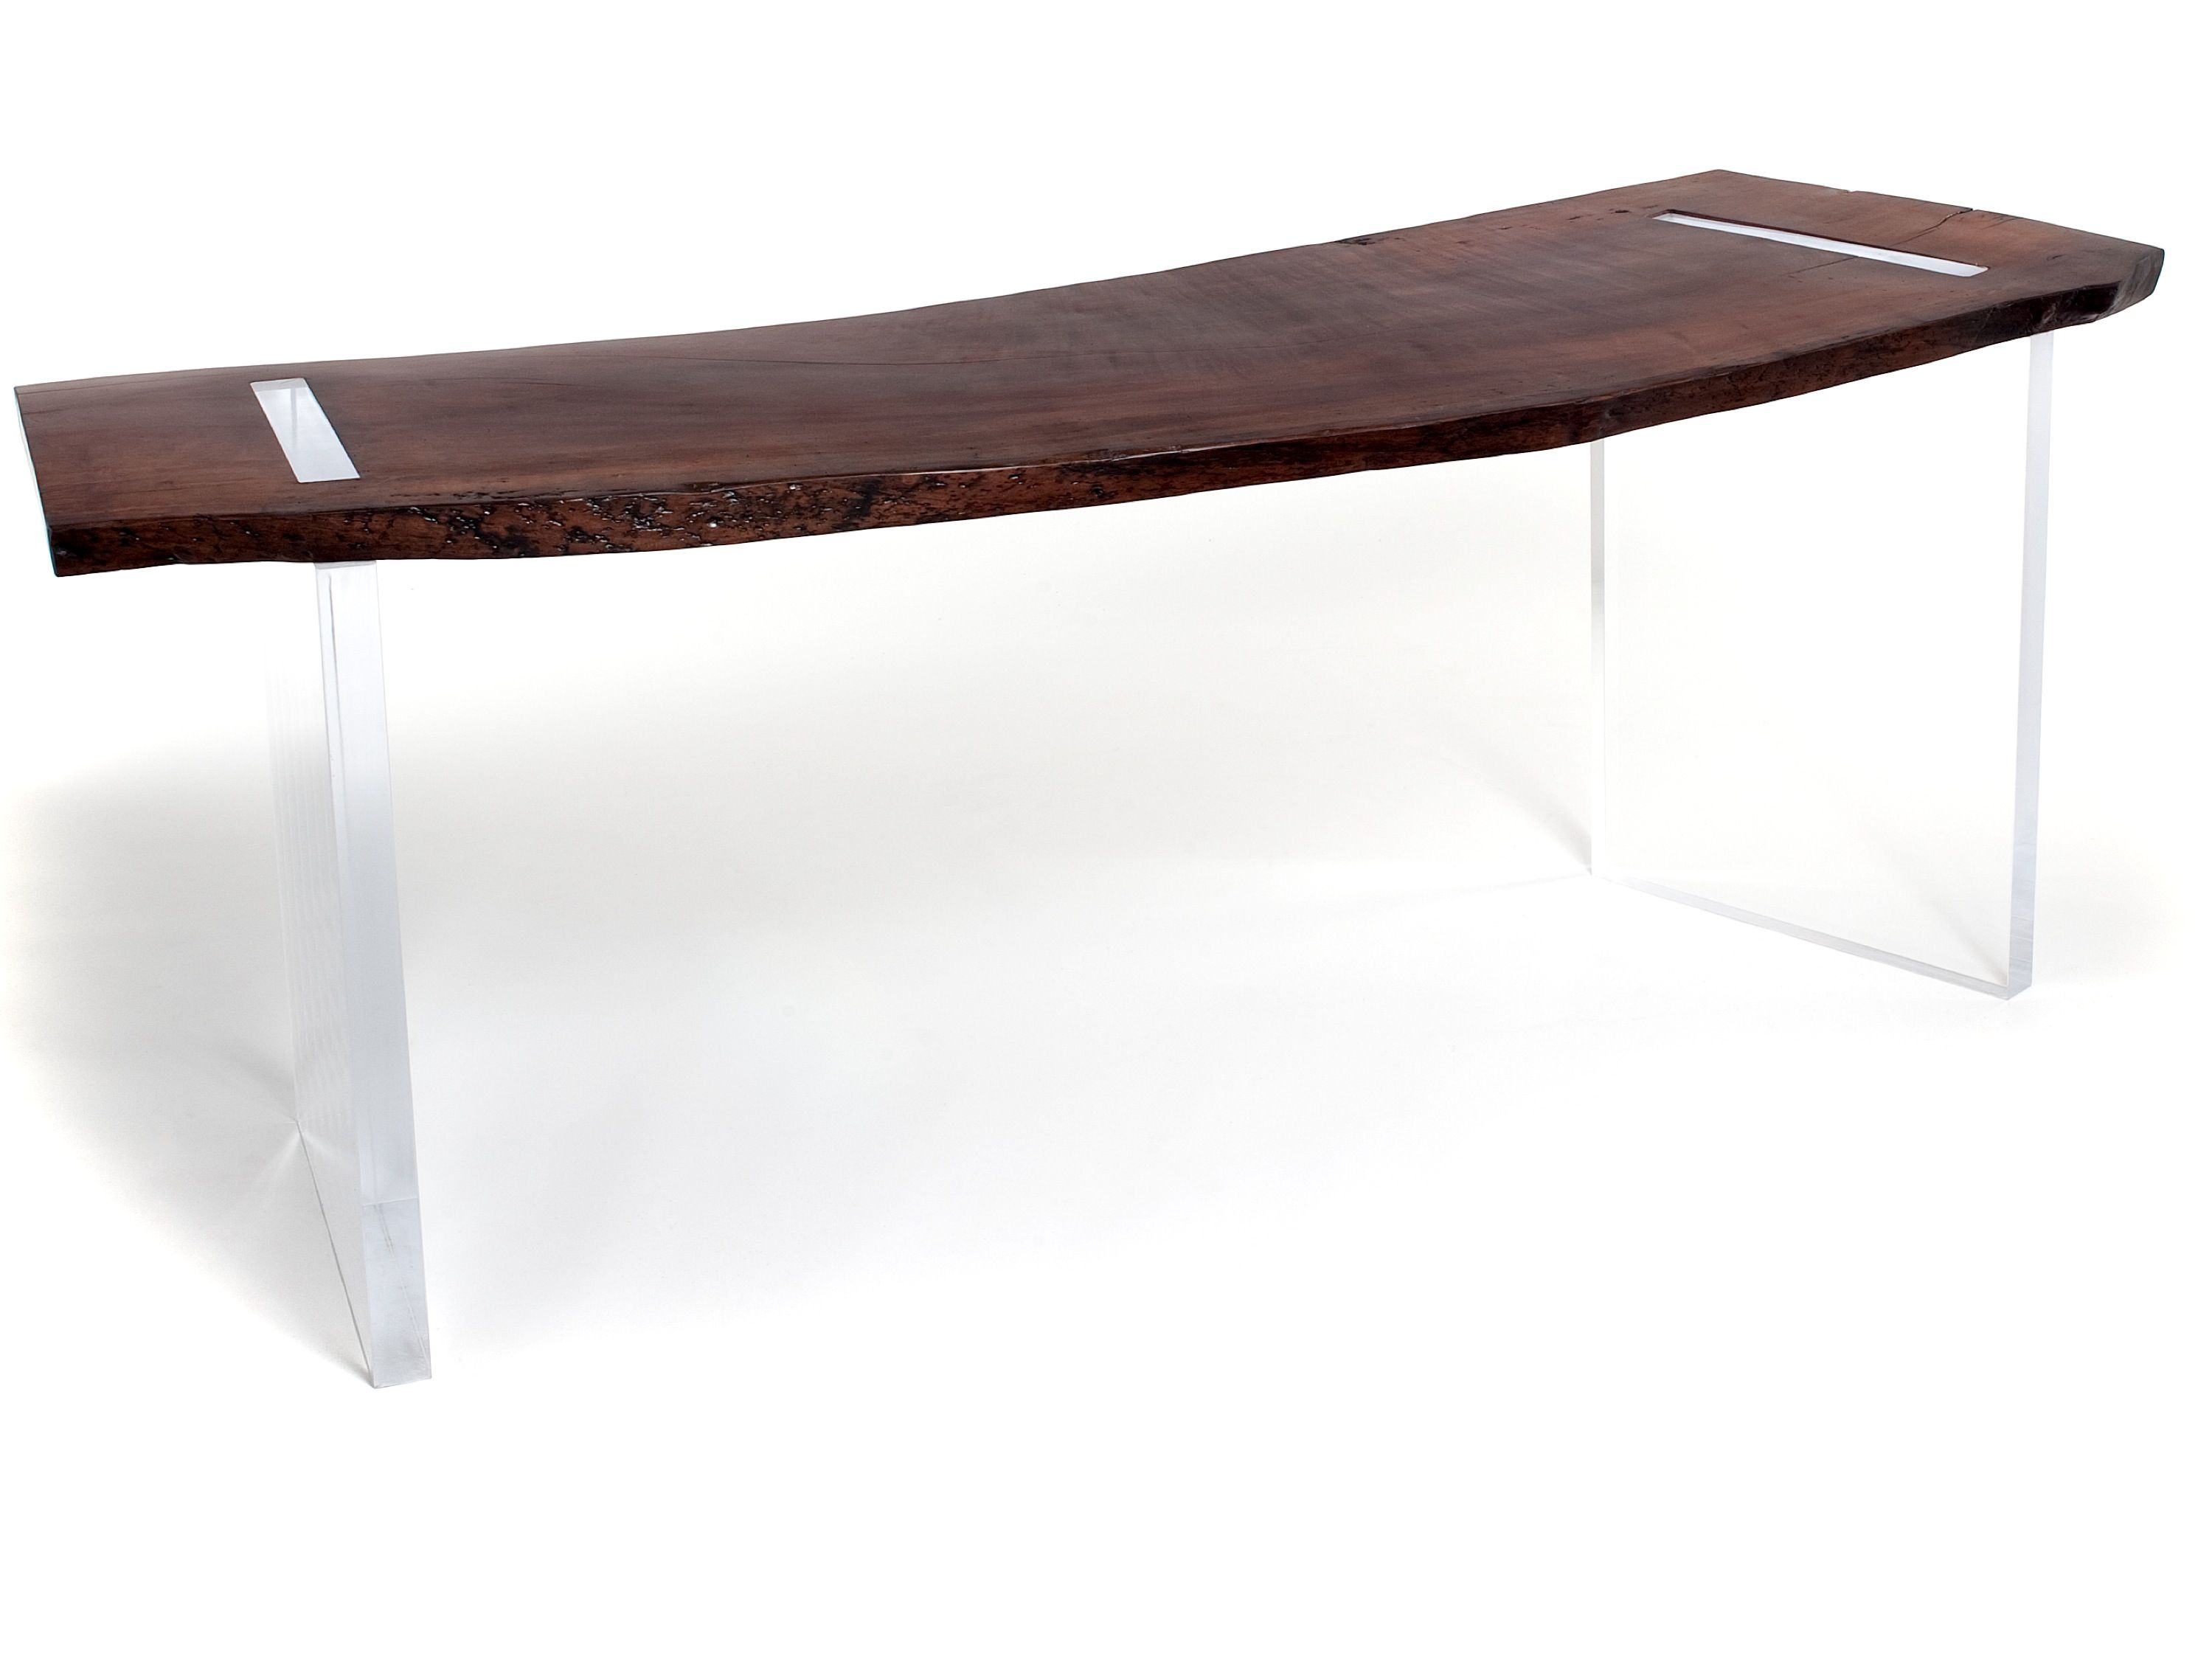 Reclaimed Wood Floating Desk with Acrylic Legs | "|2999|2249|?|en|2|e522844c7c8936bd56dcec4c68bbafed|False|UNLIKELY|0.30861911177635193